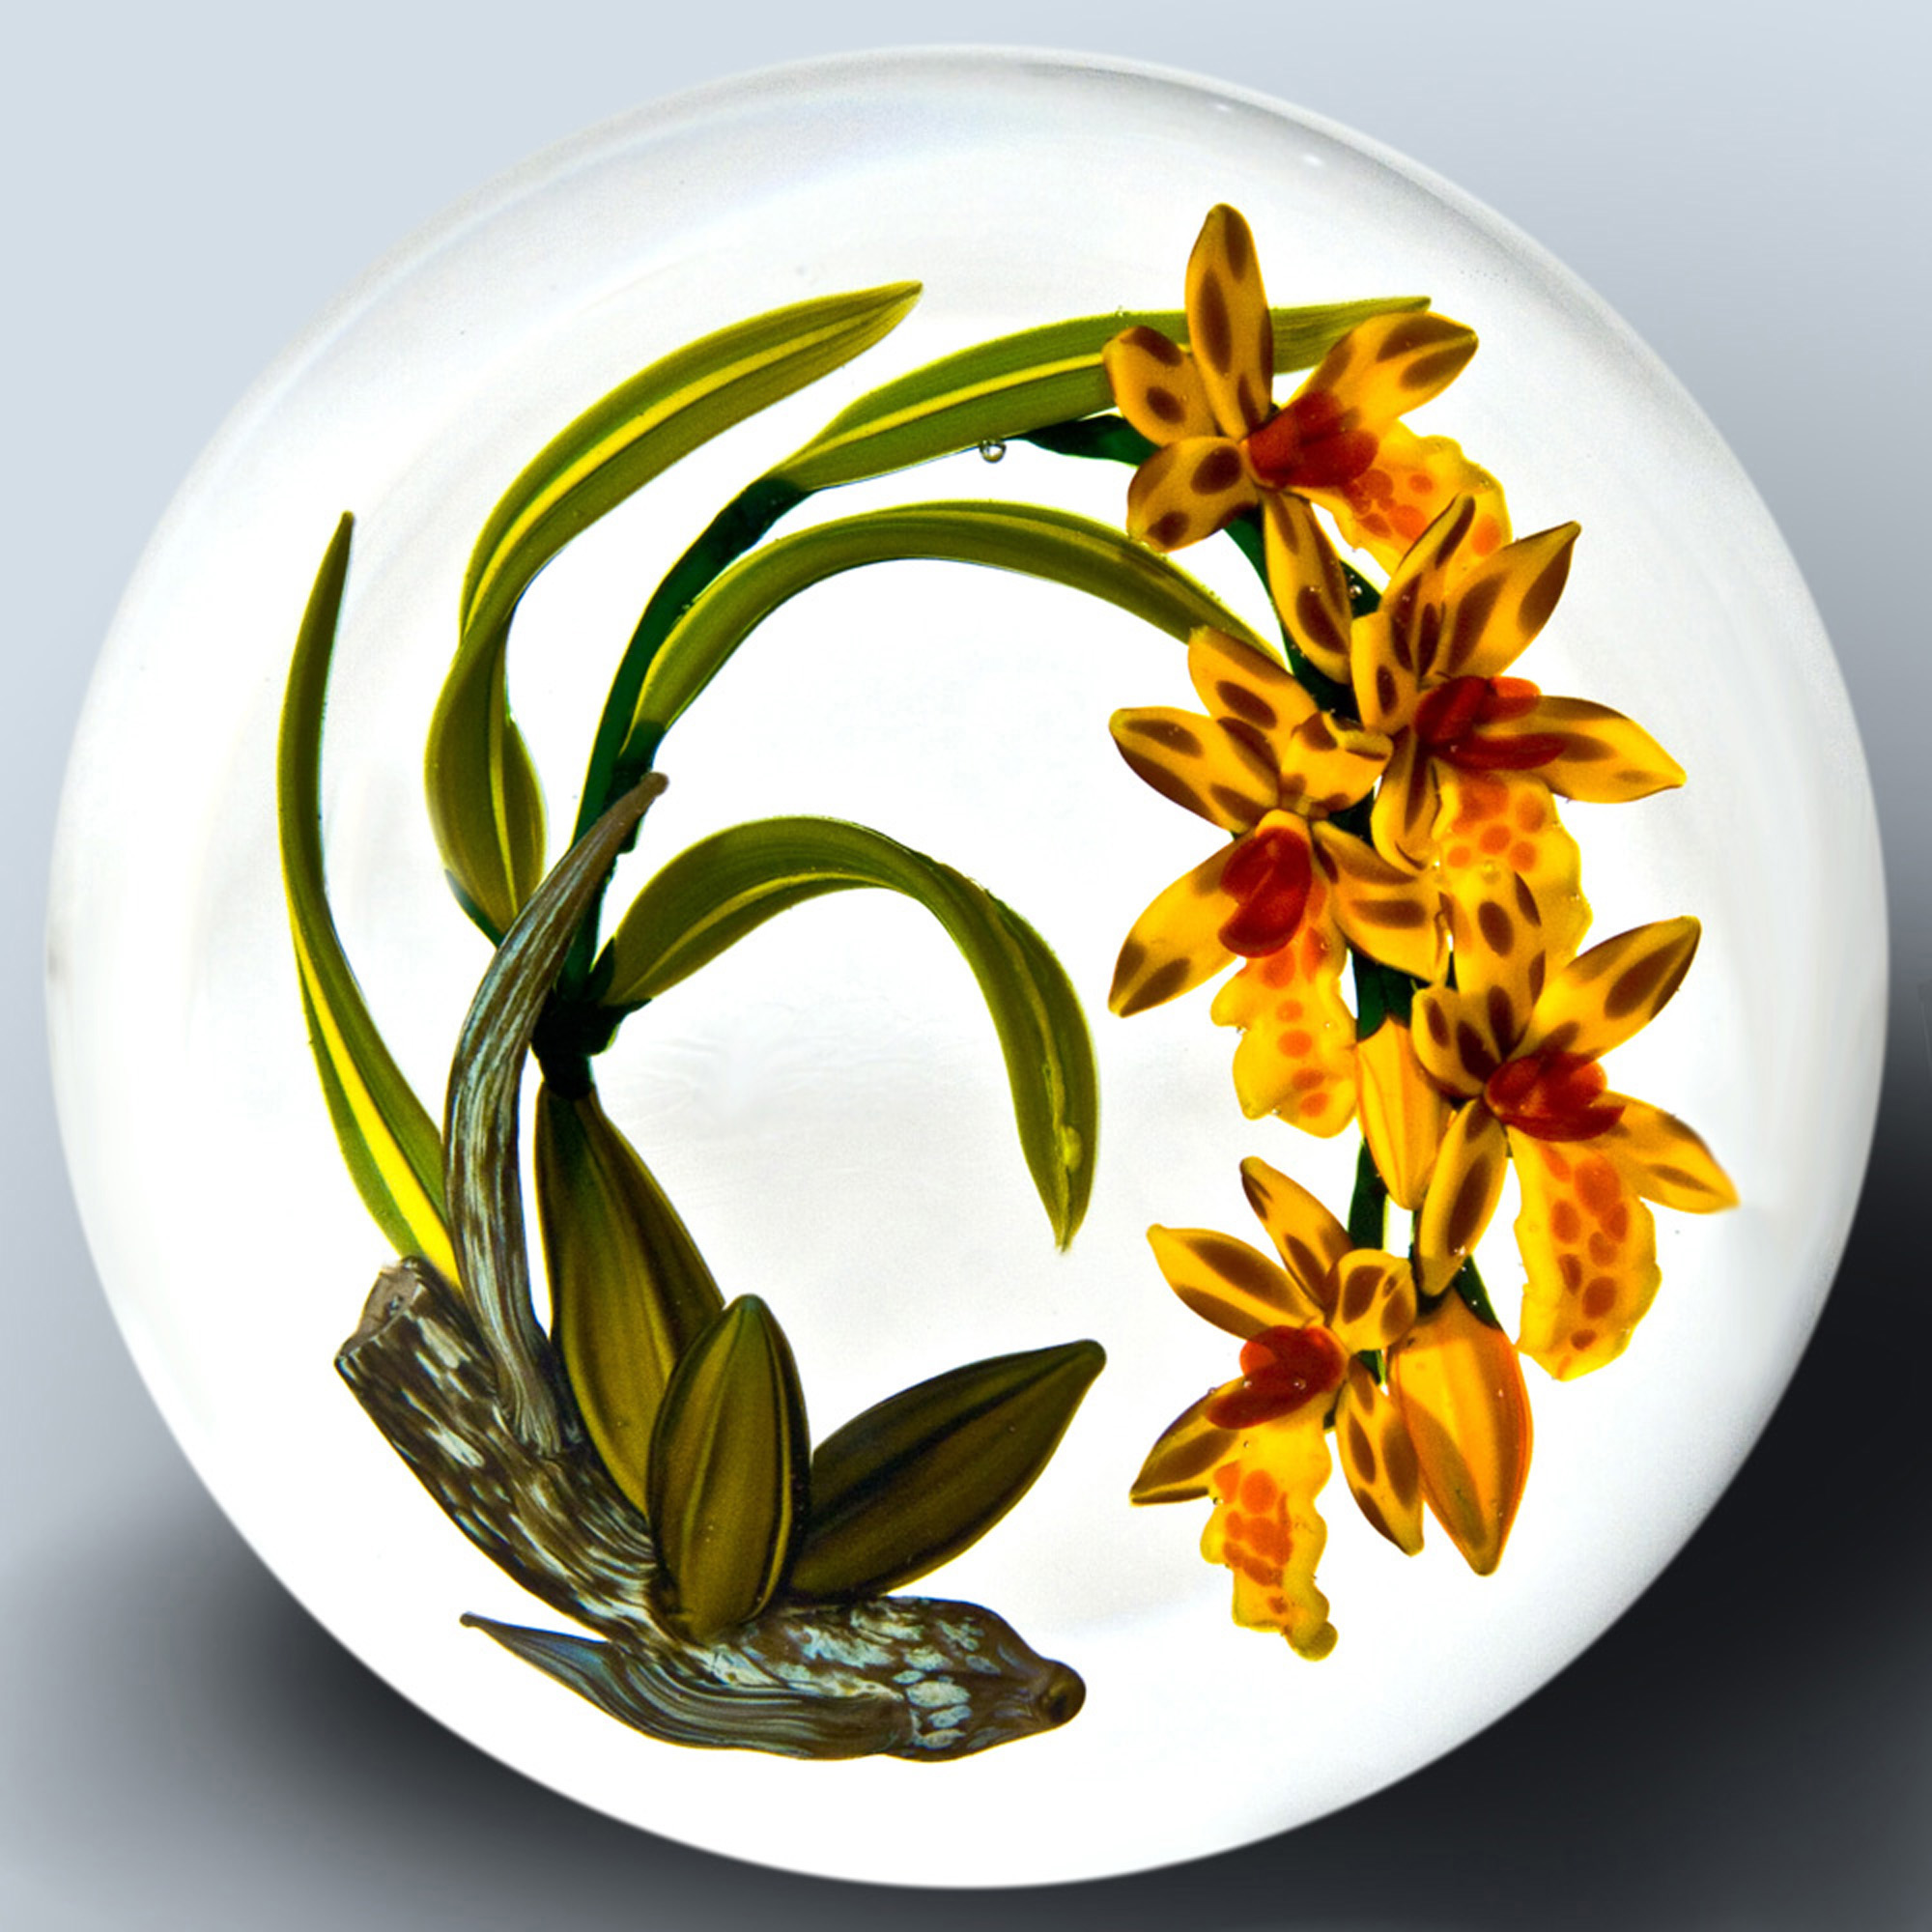 Oncidium Illustration